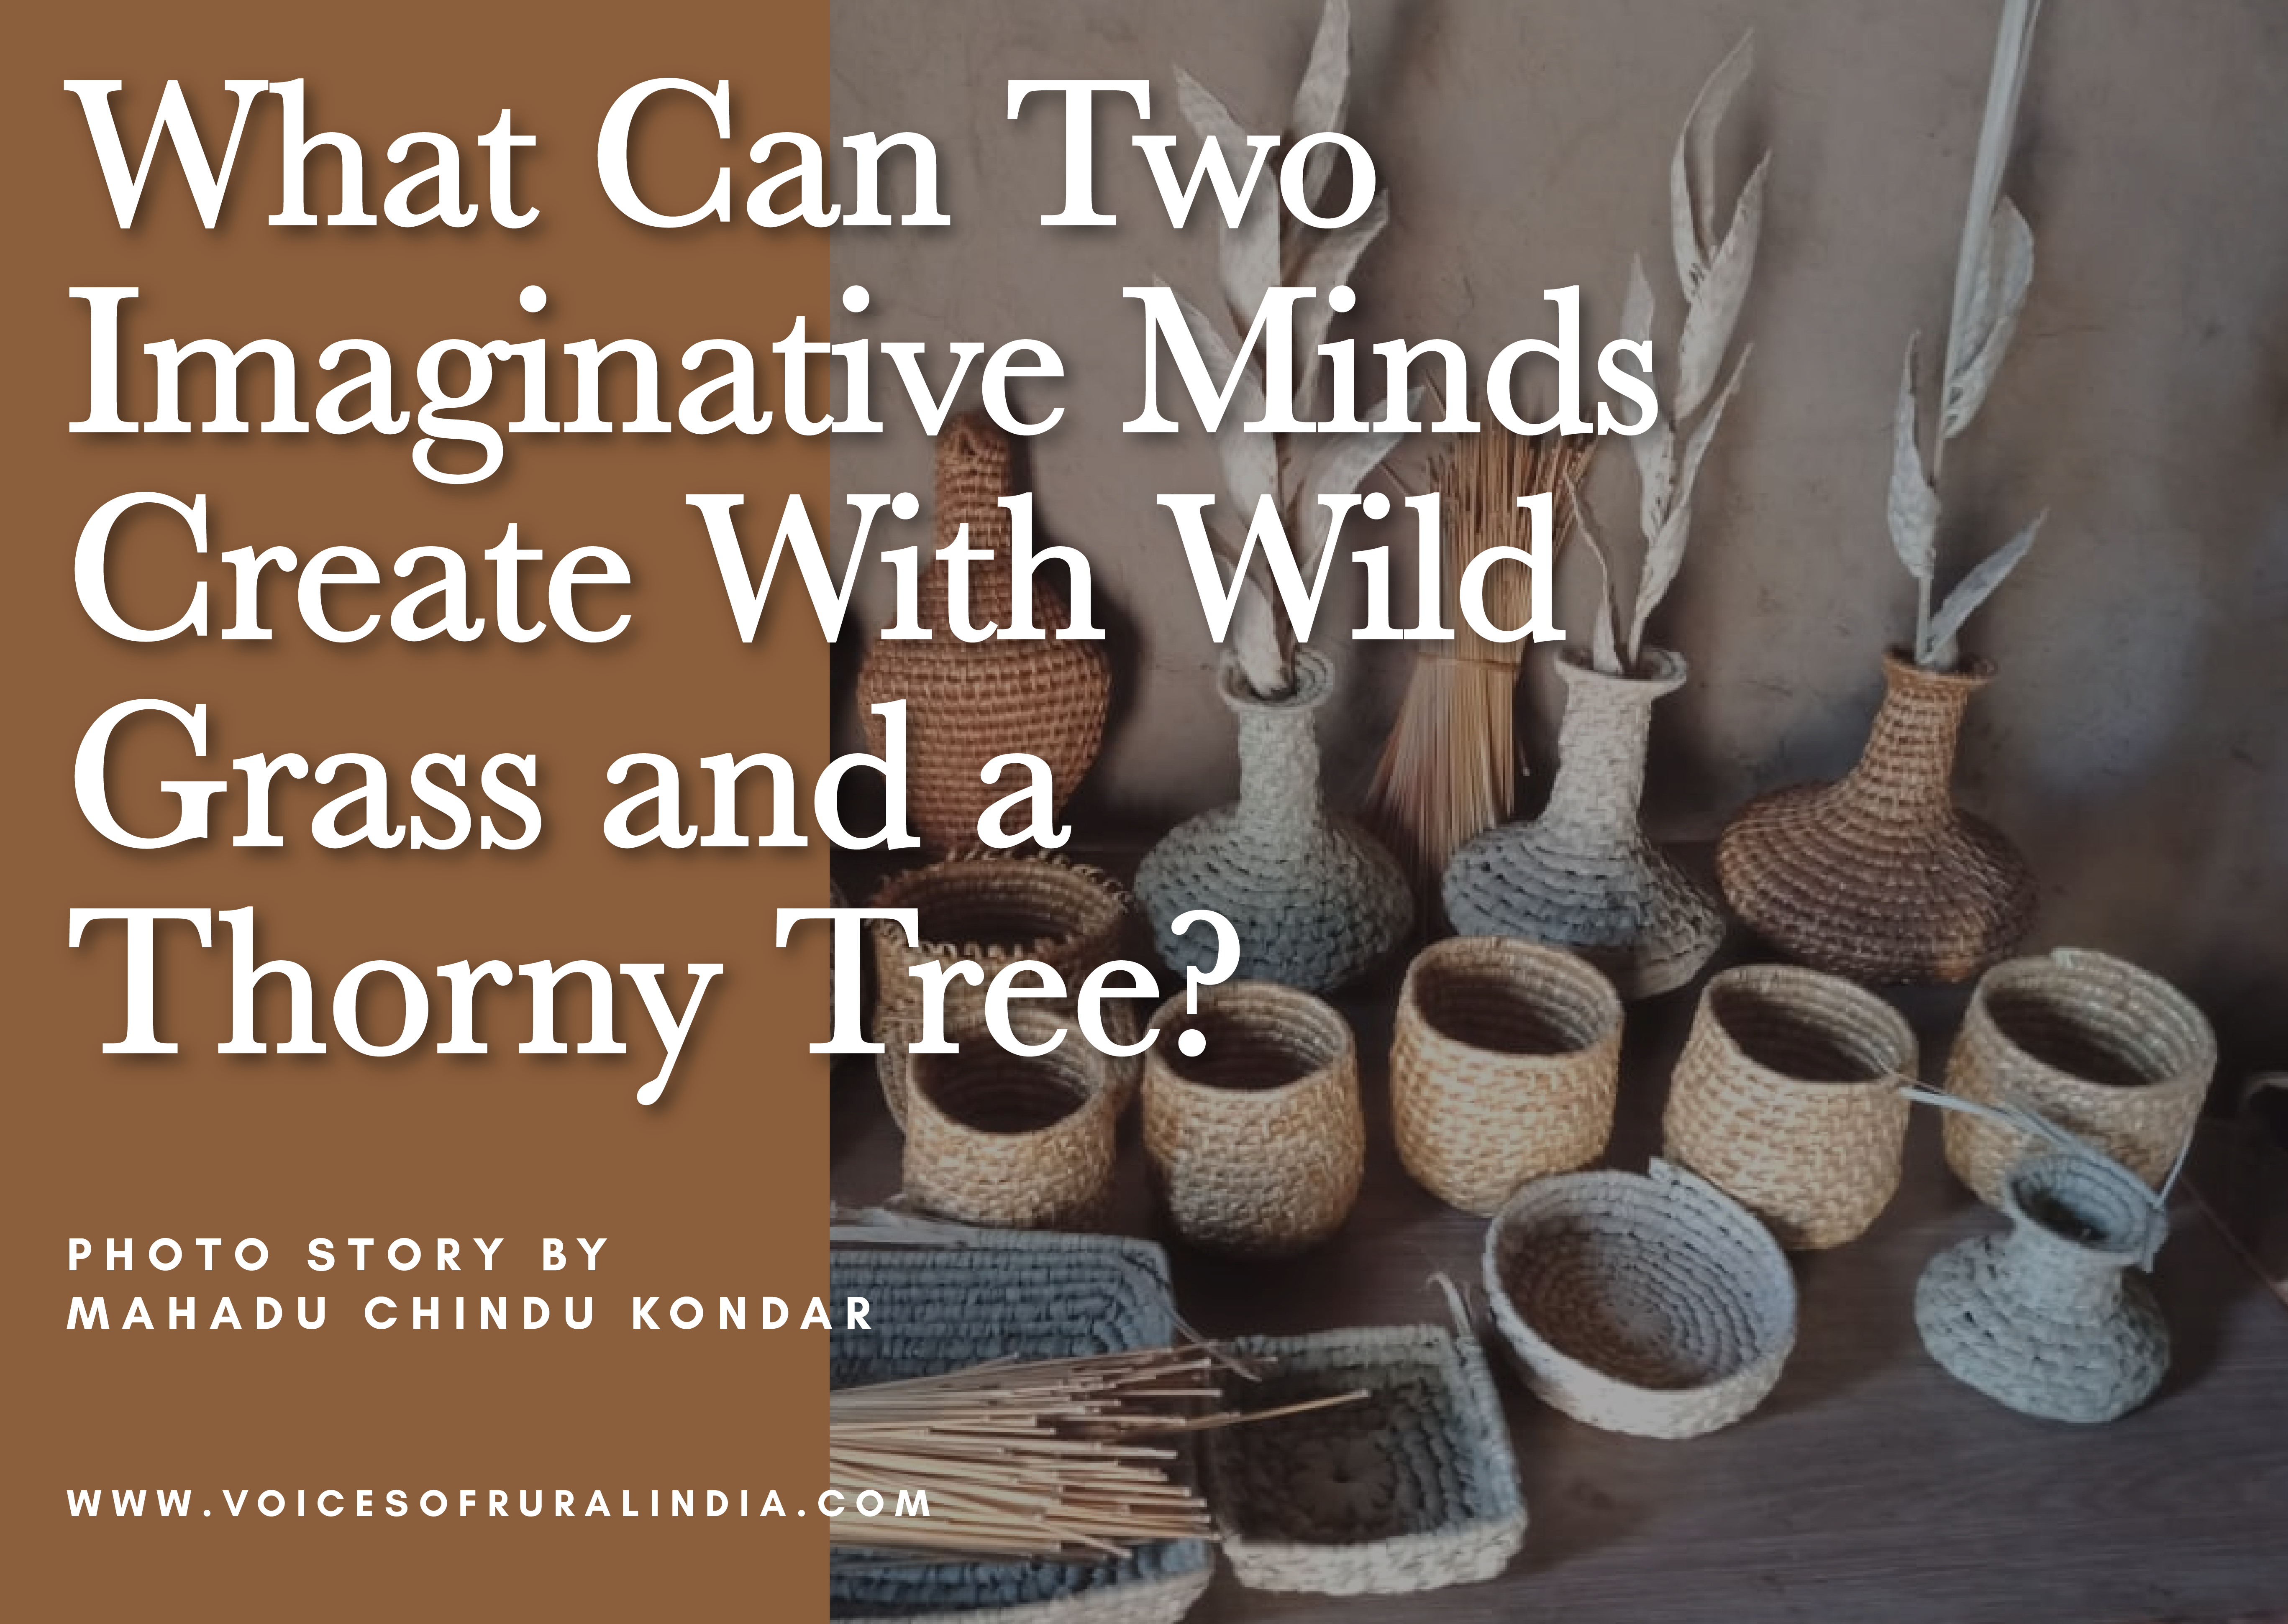 What Can Two Imaginative Minds Create With Wild Grass and a Thorny Tree?